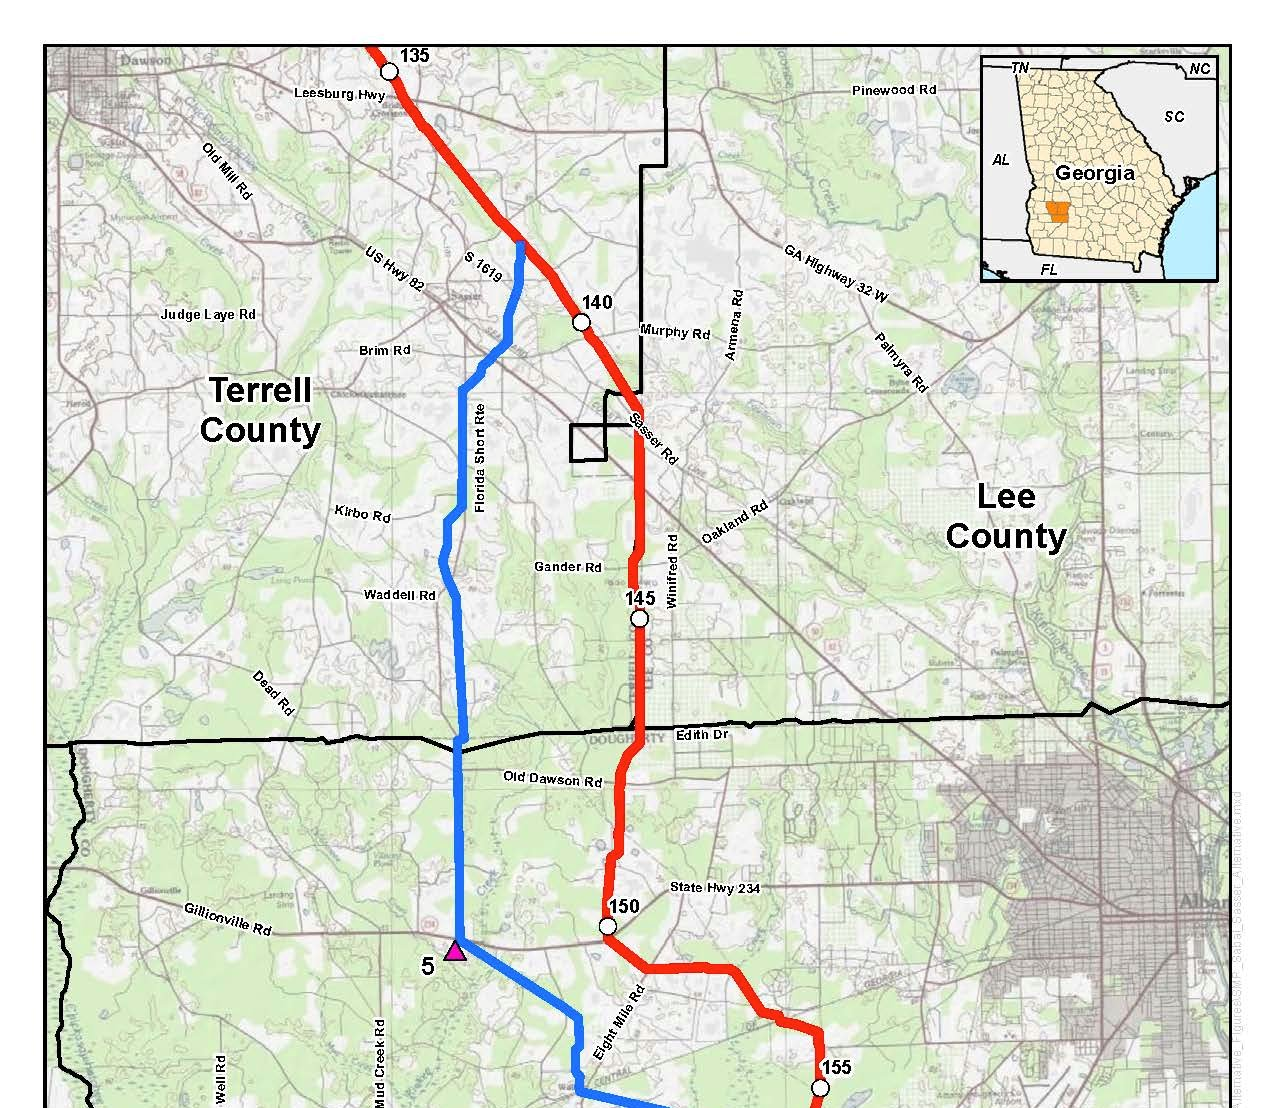 1275x1108 Sasser Route Alternative, Albany Compressor station Alternatives, Terrell, Lee, and Dougherty Counties. Georgia (top), in Sabal Trail Notice of EIS Intent, by John S. Quarterman, for SpectraBusters.org, 15 October 2014